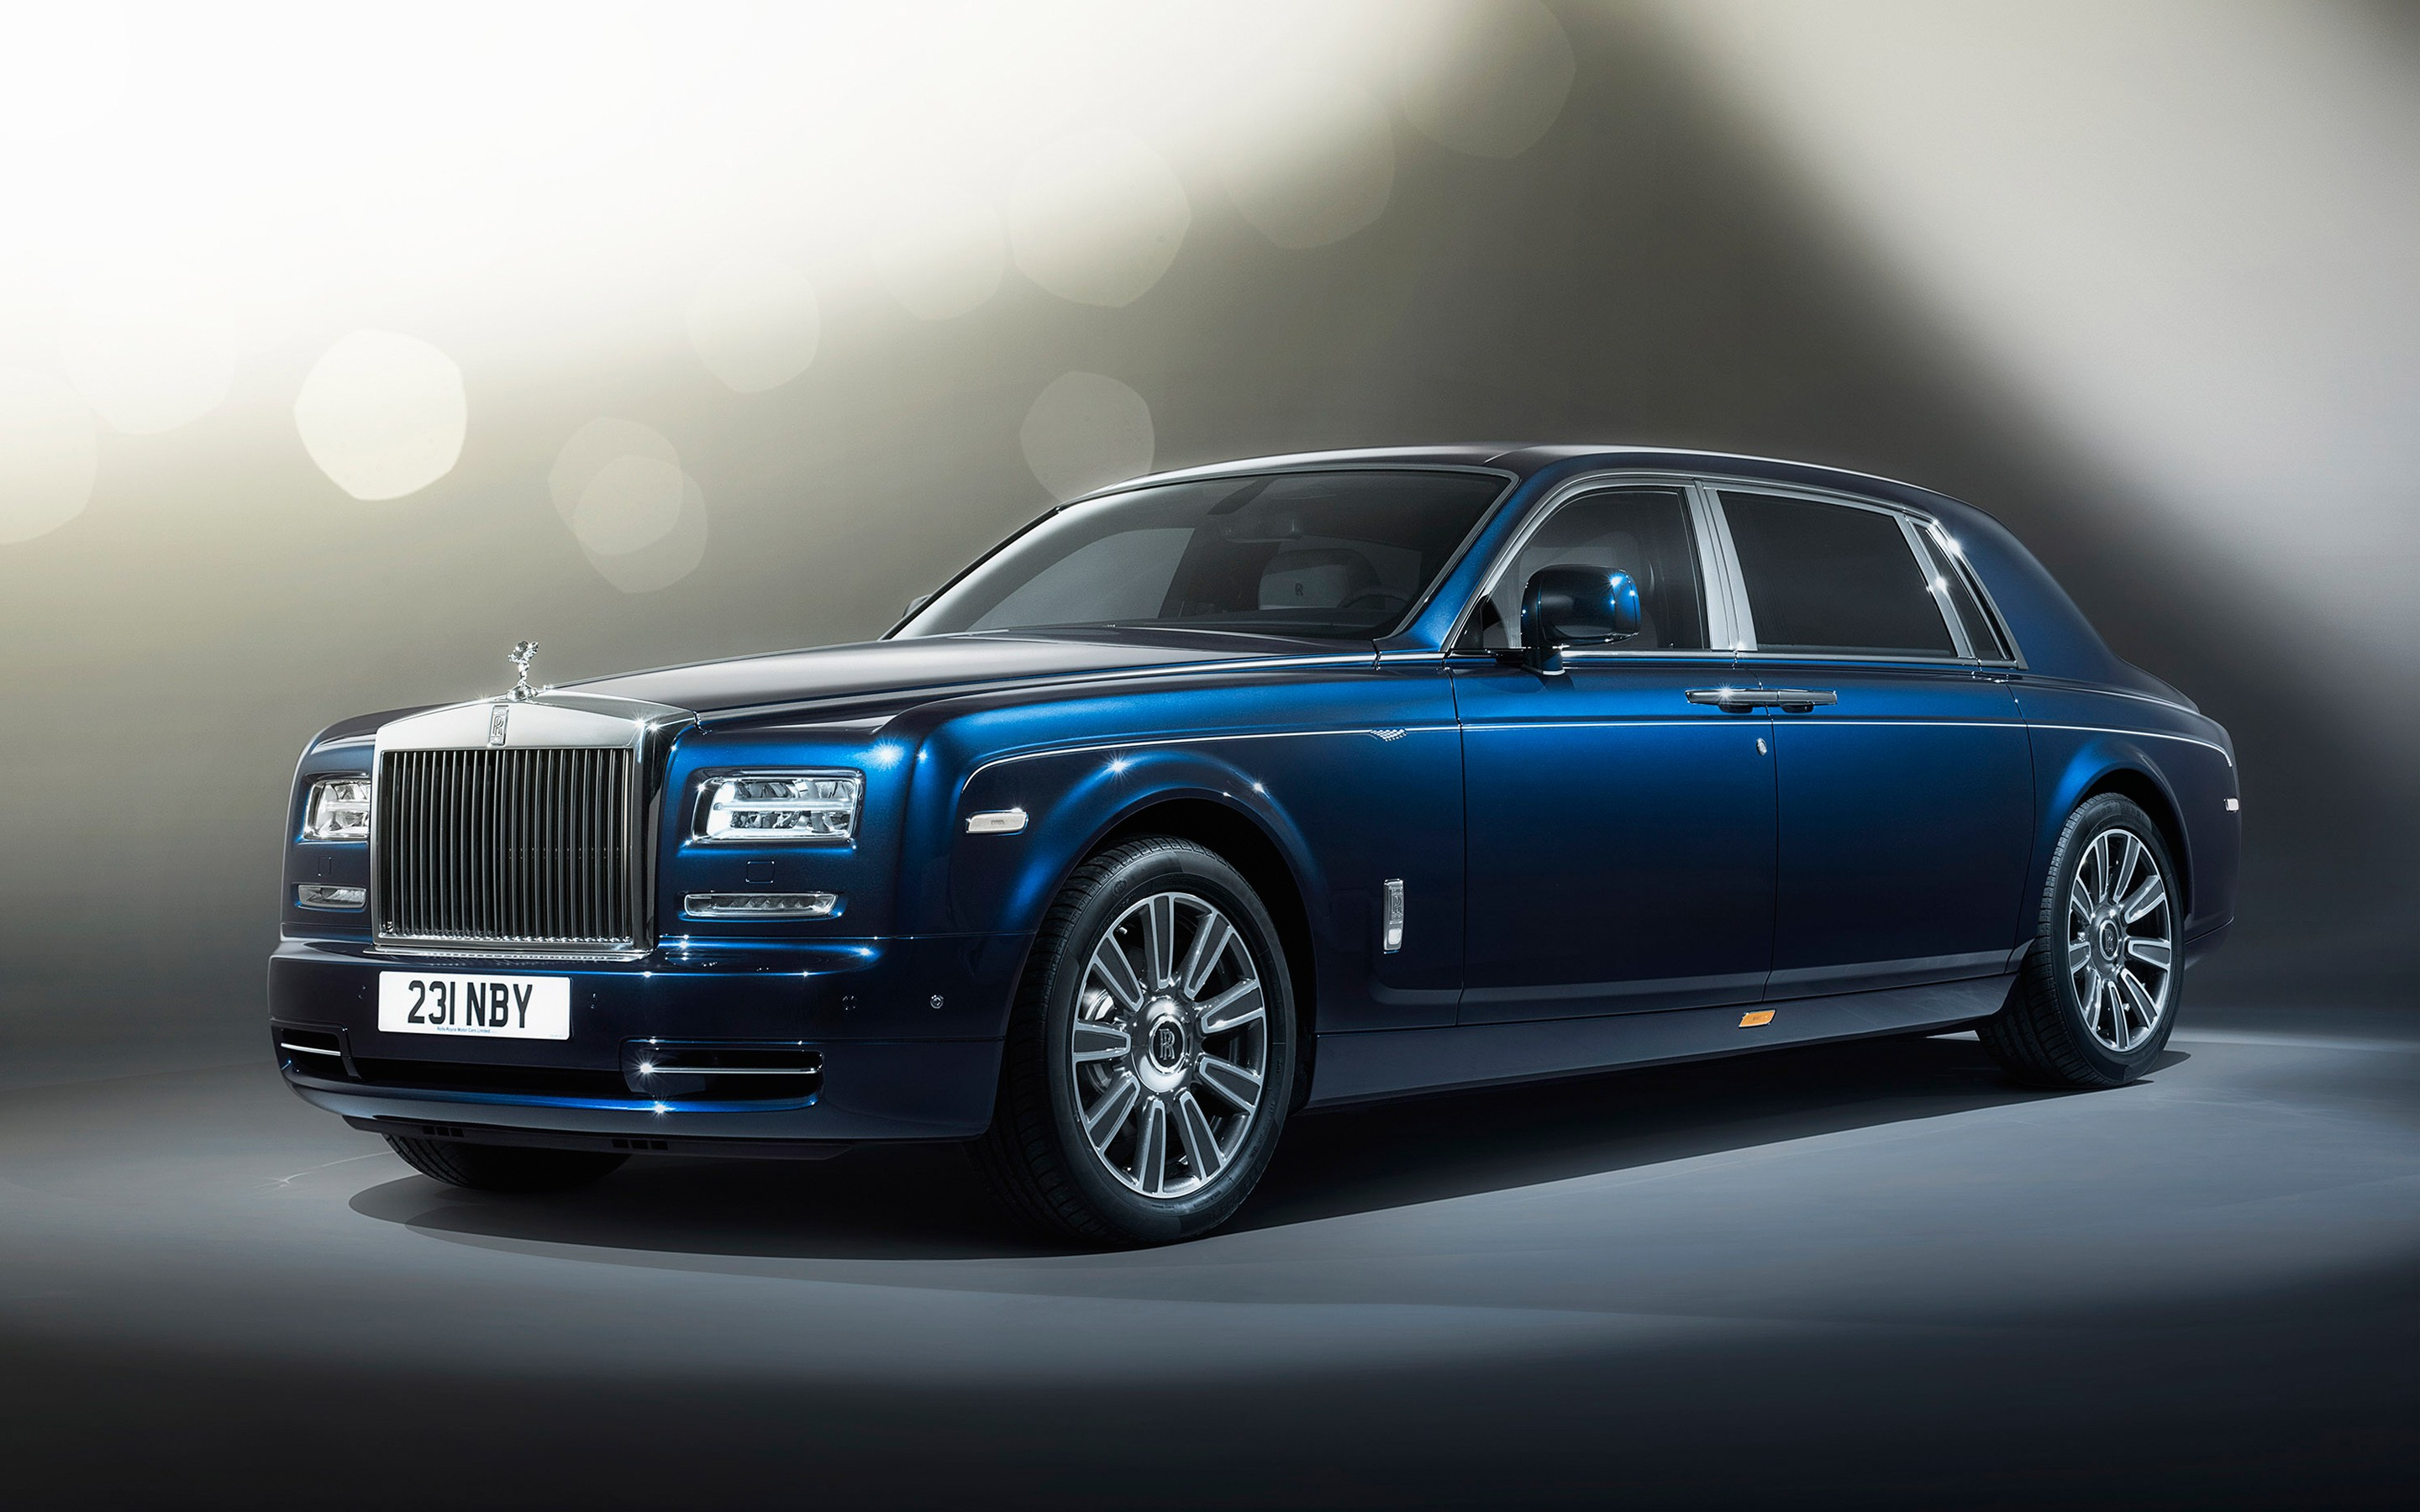 Rolls royce phantom photo - 5